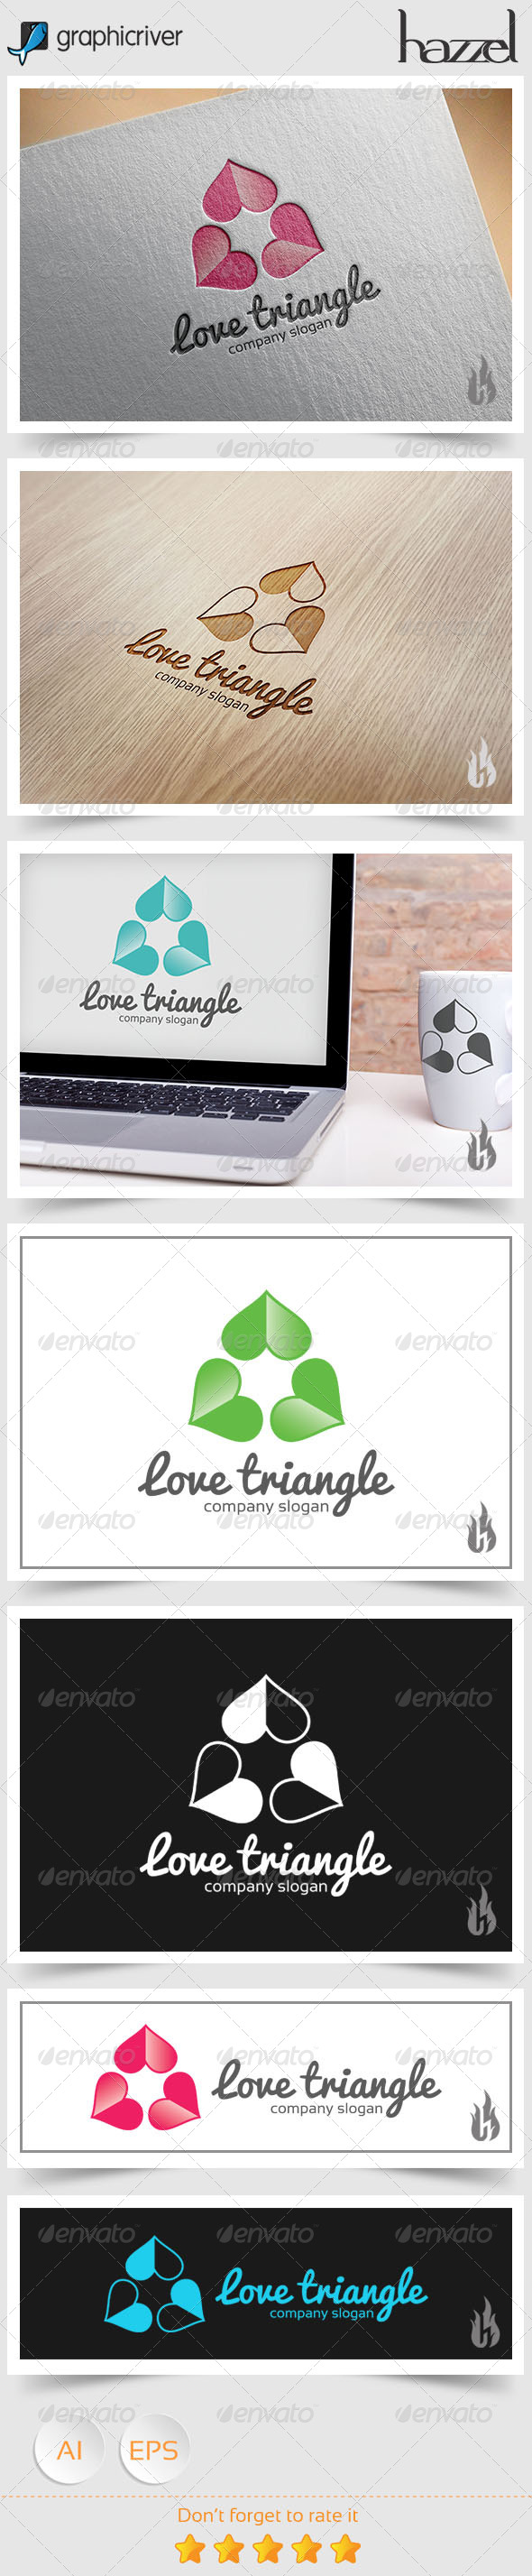 GraphicRiver Love Triangle Logo 8739228